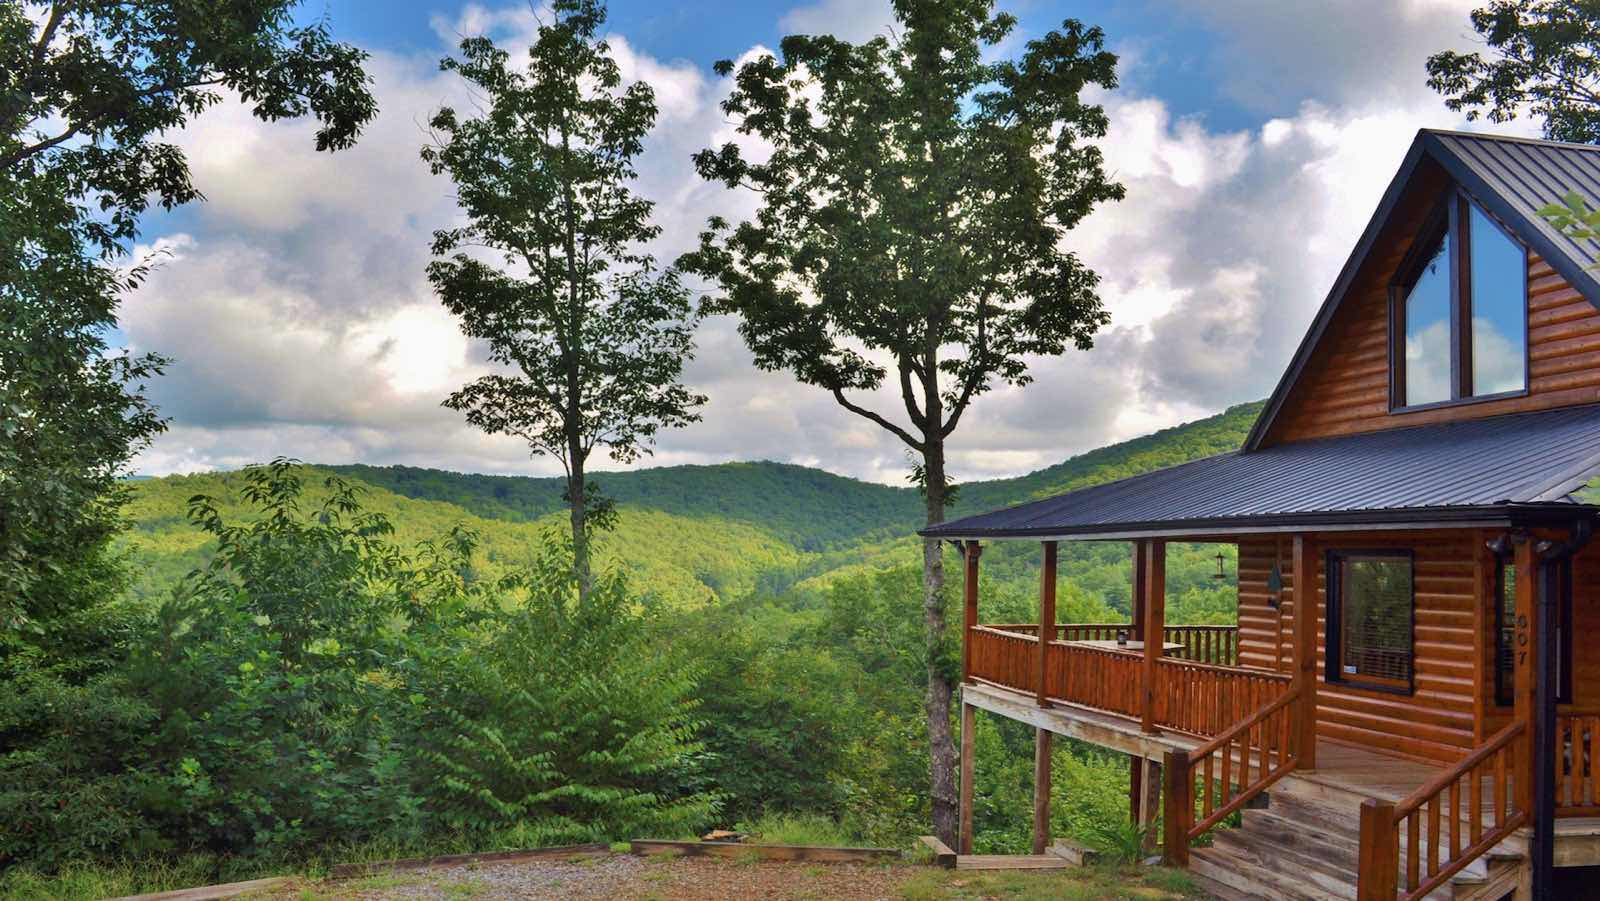 virginia mountain cabin blue ridge interior asheville mountains for cabins onlinechange rentals rent luxury georgia info